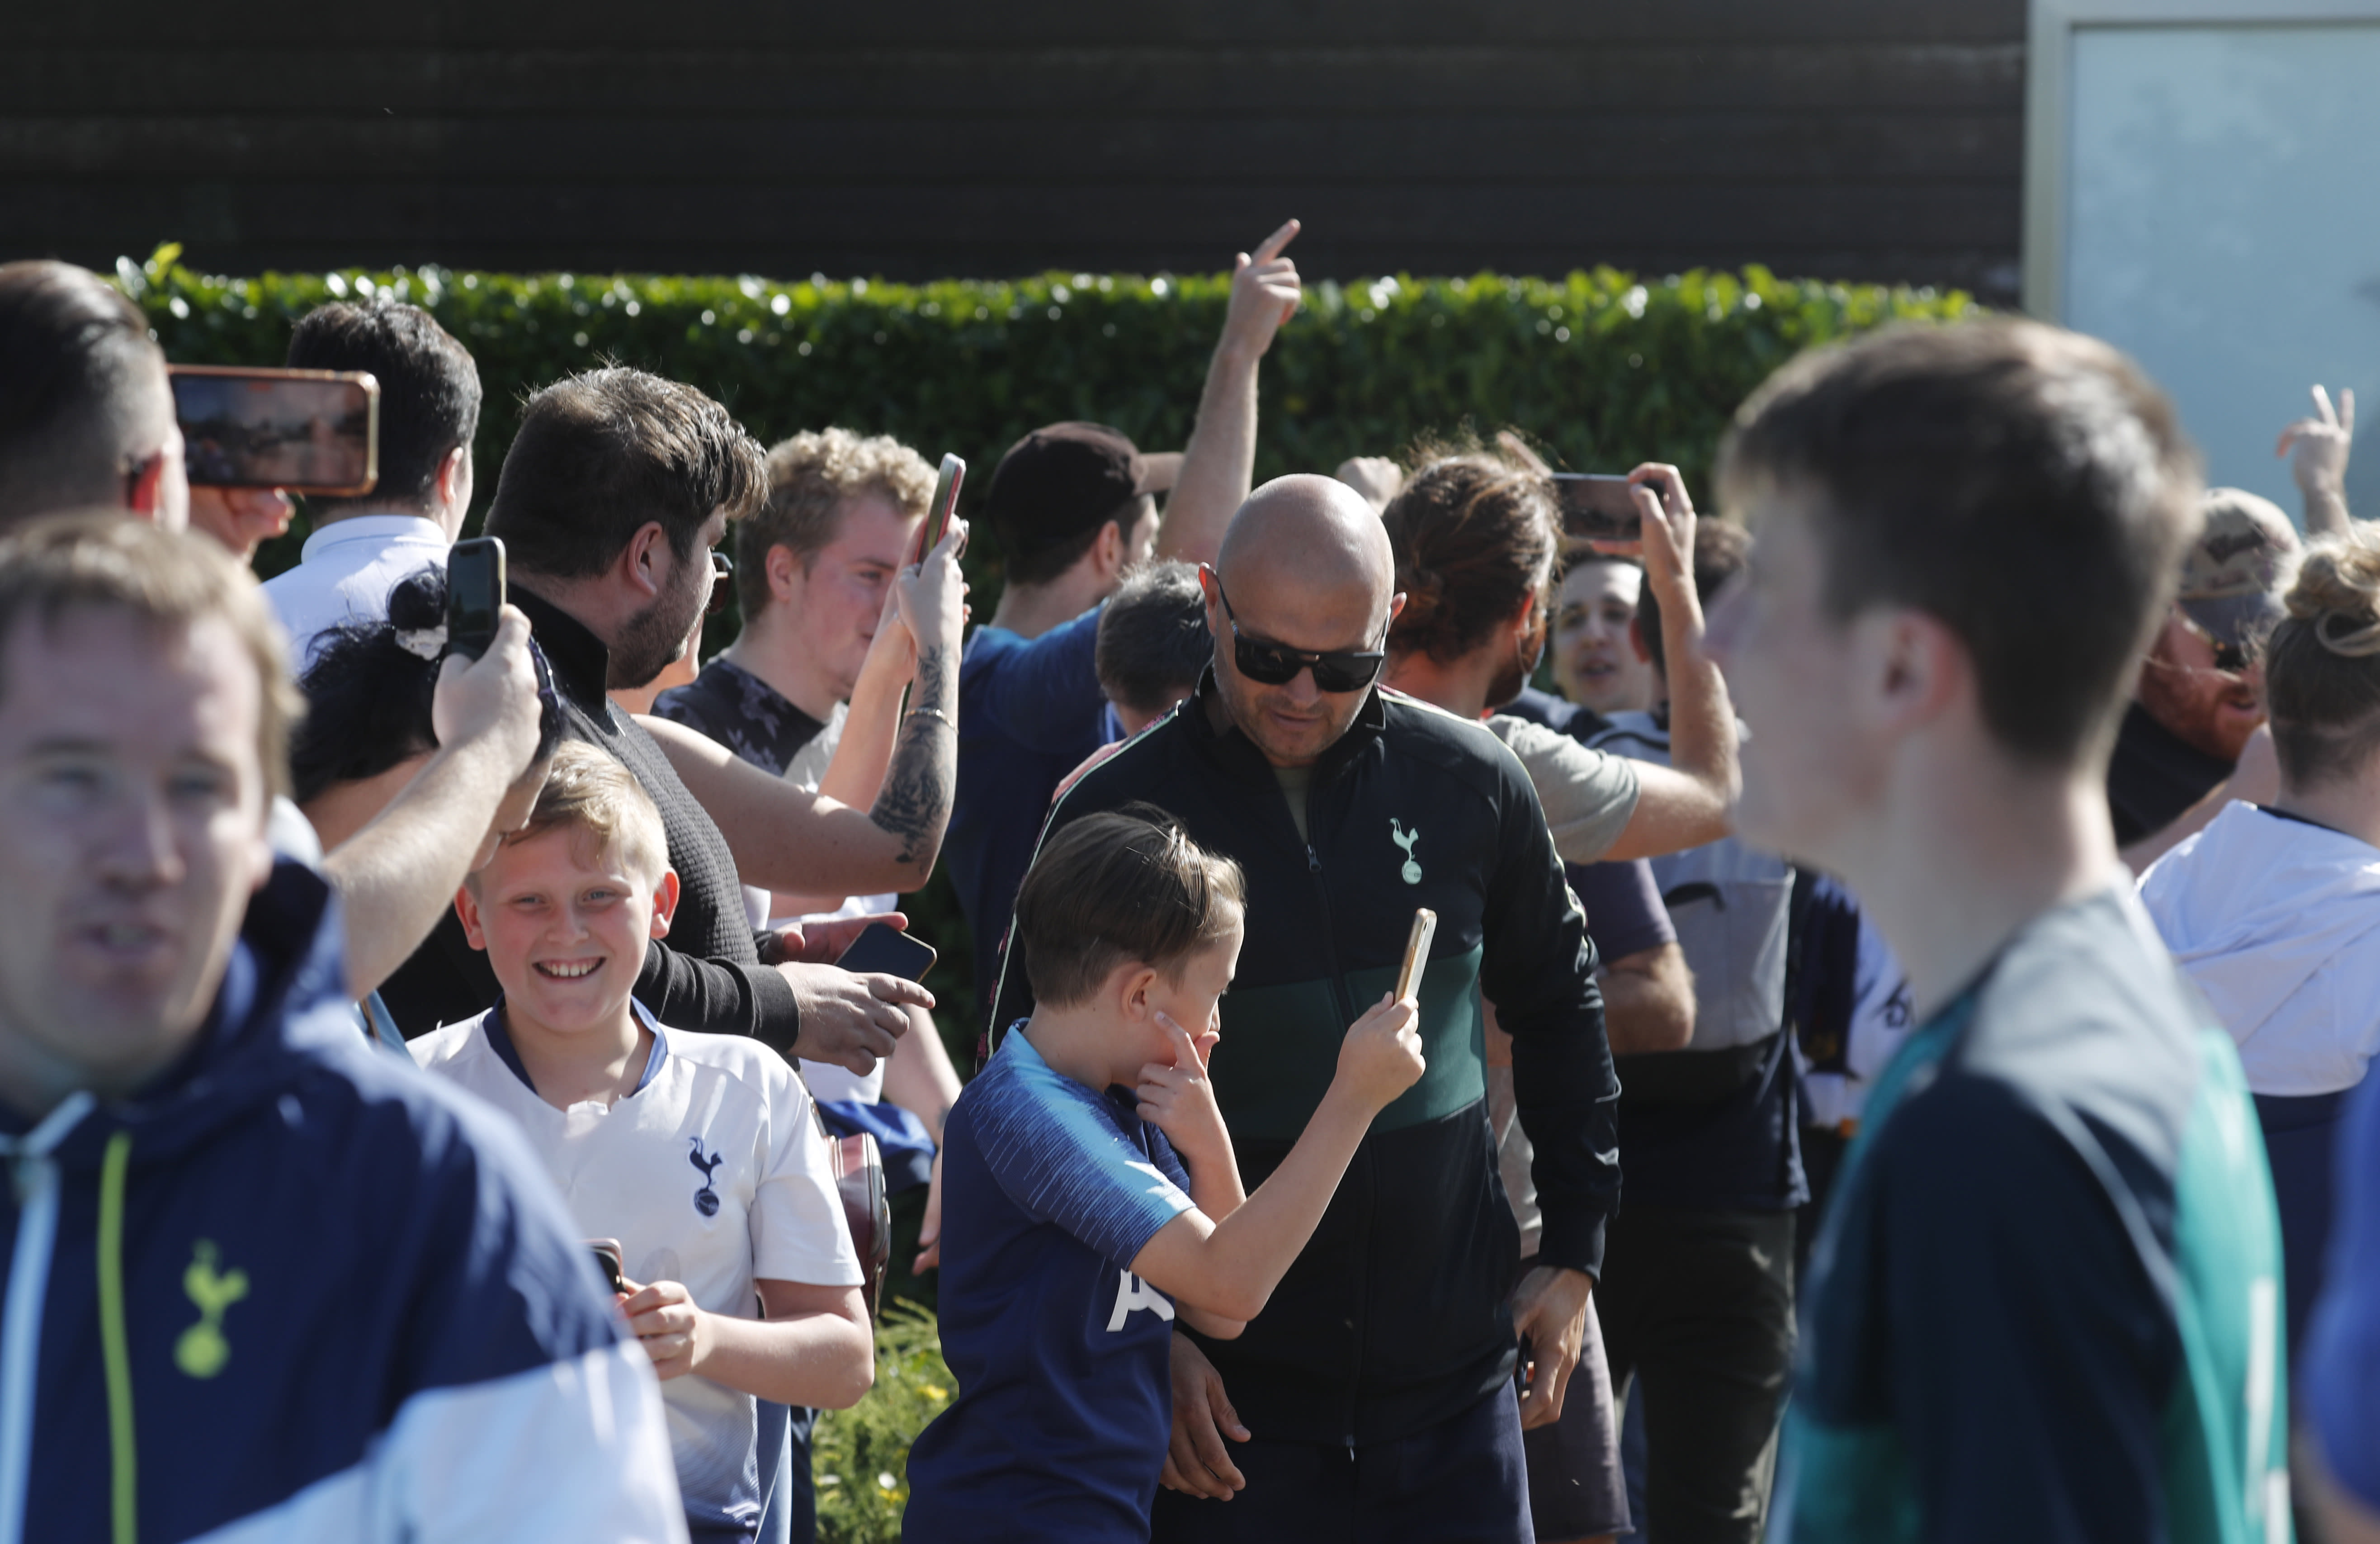 Fans cheers as soccer player Gareth Bale arrives at the training ground of Tottenham Hotspur in London, Friday Sept. 18, 2020. Real Madrid winger Gareth Bale is in London to complete his return to Tottenham. Bale left Tottenham for Madrid in 2013 for 100 million euros. (AP Photo/Frank Augstein)